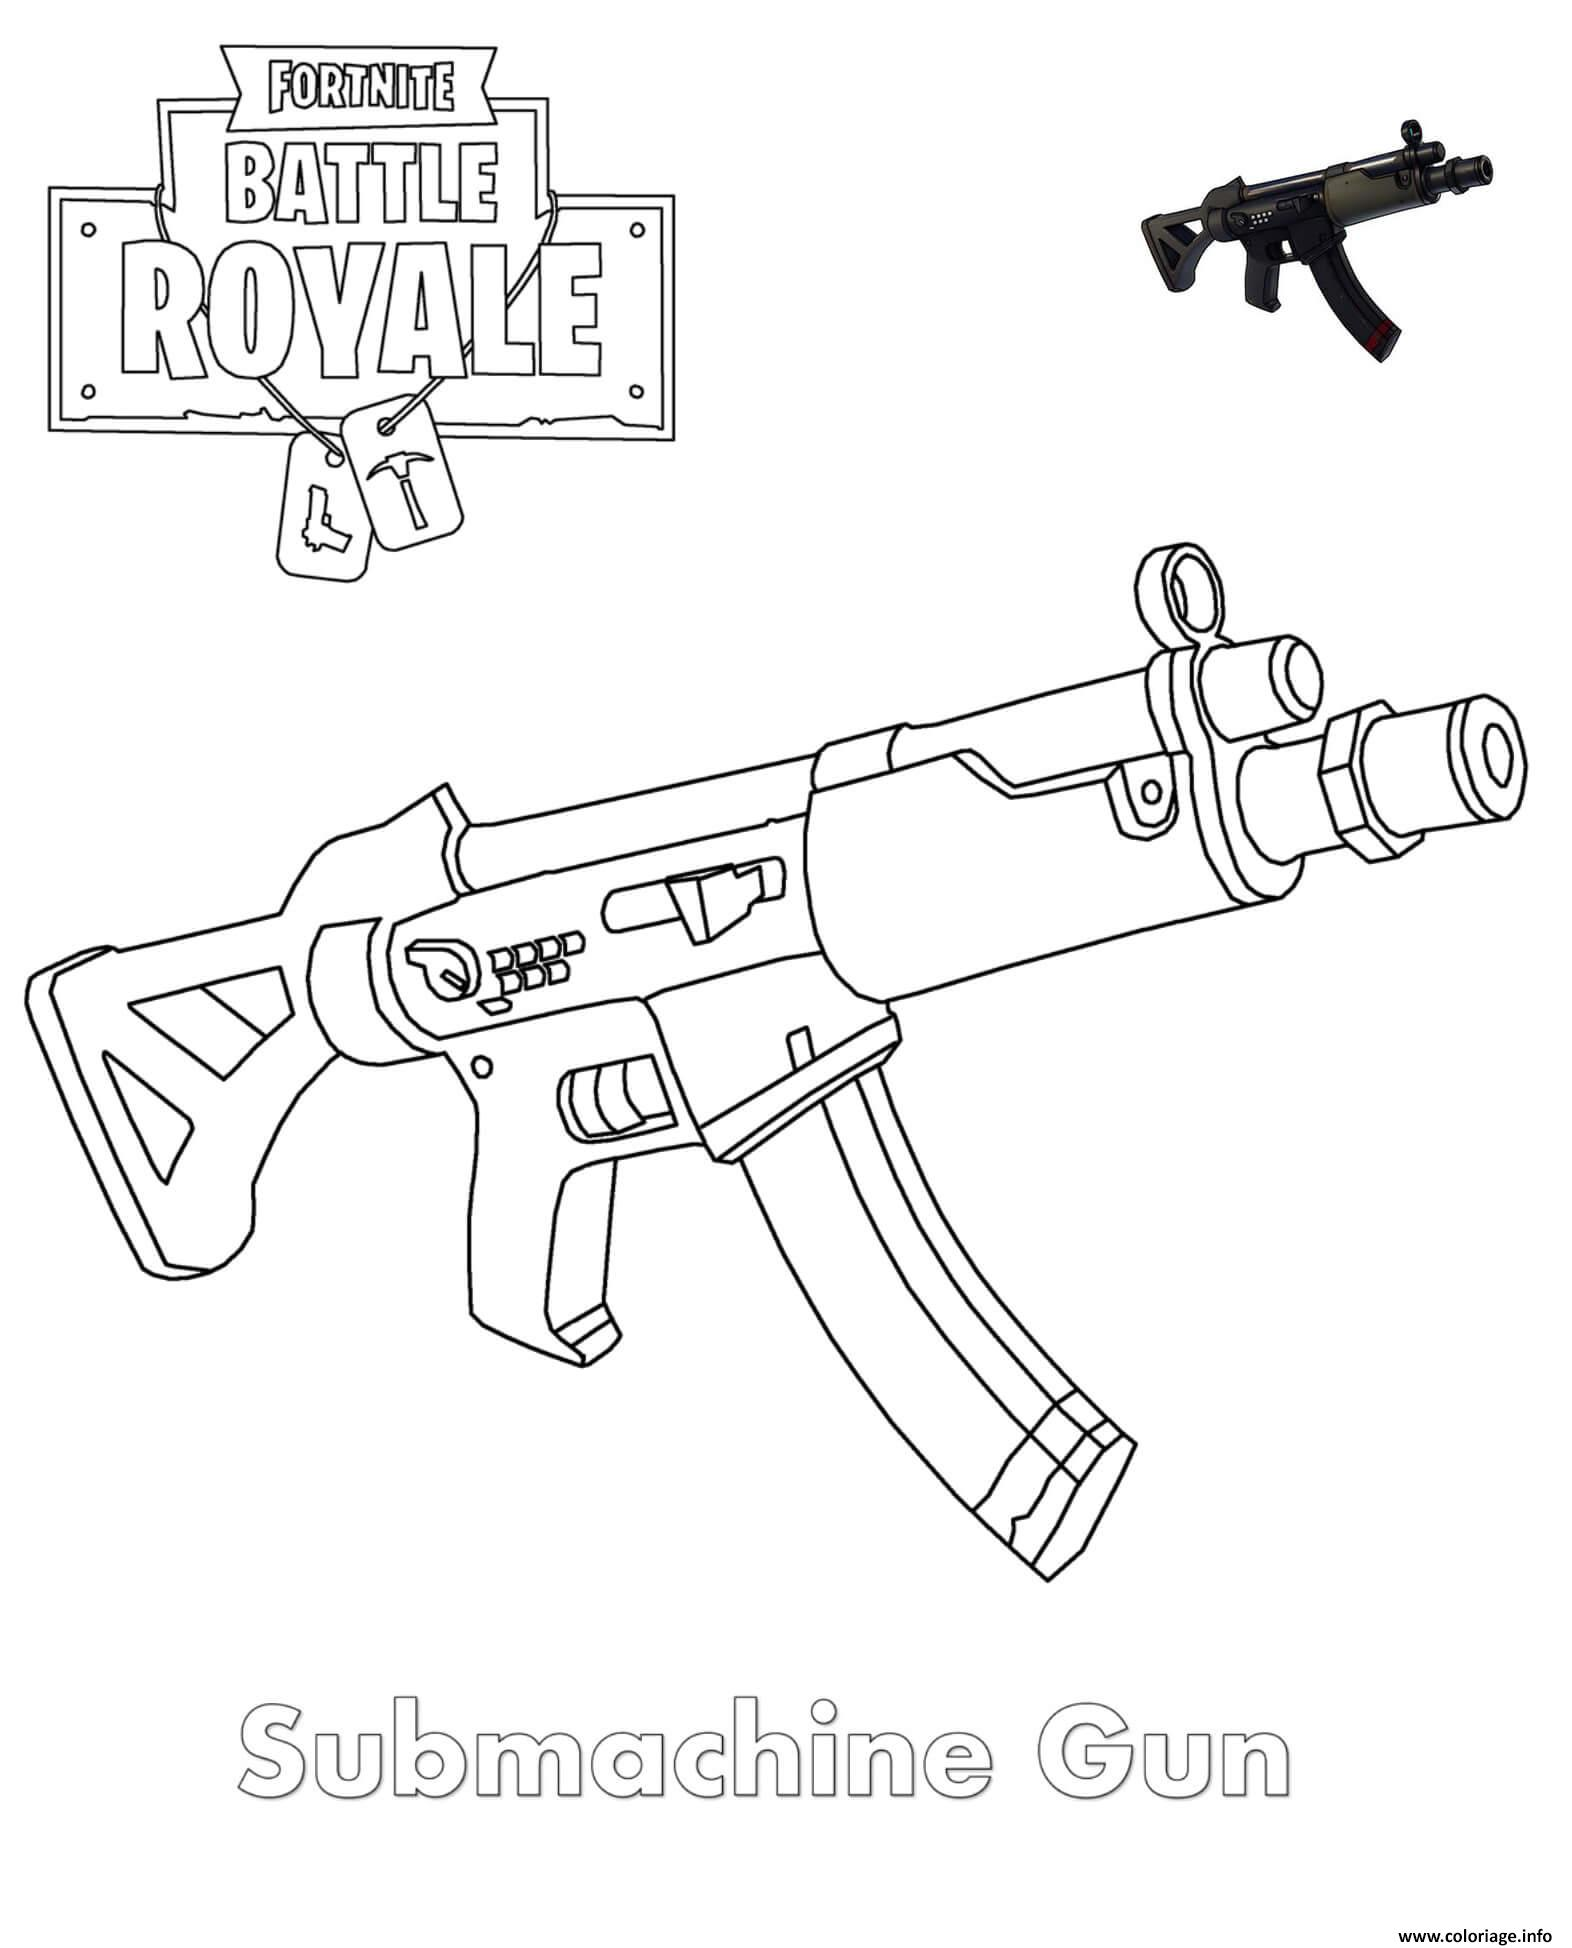 Coloriage Submachine Gun Fortnite Jecolorie Com